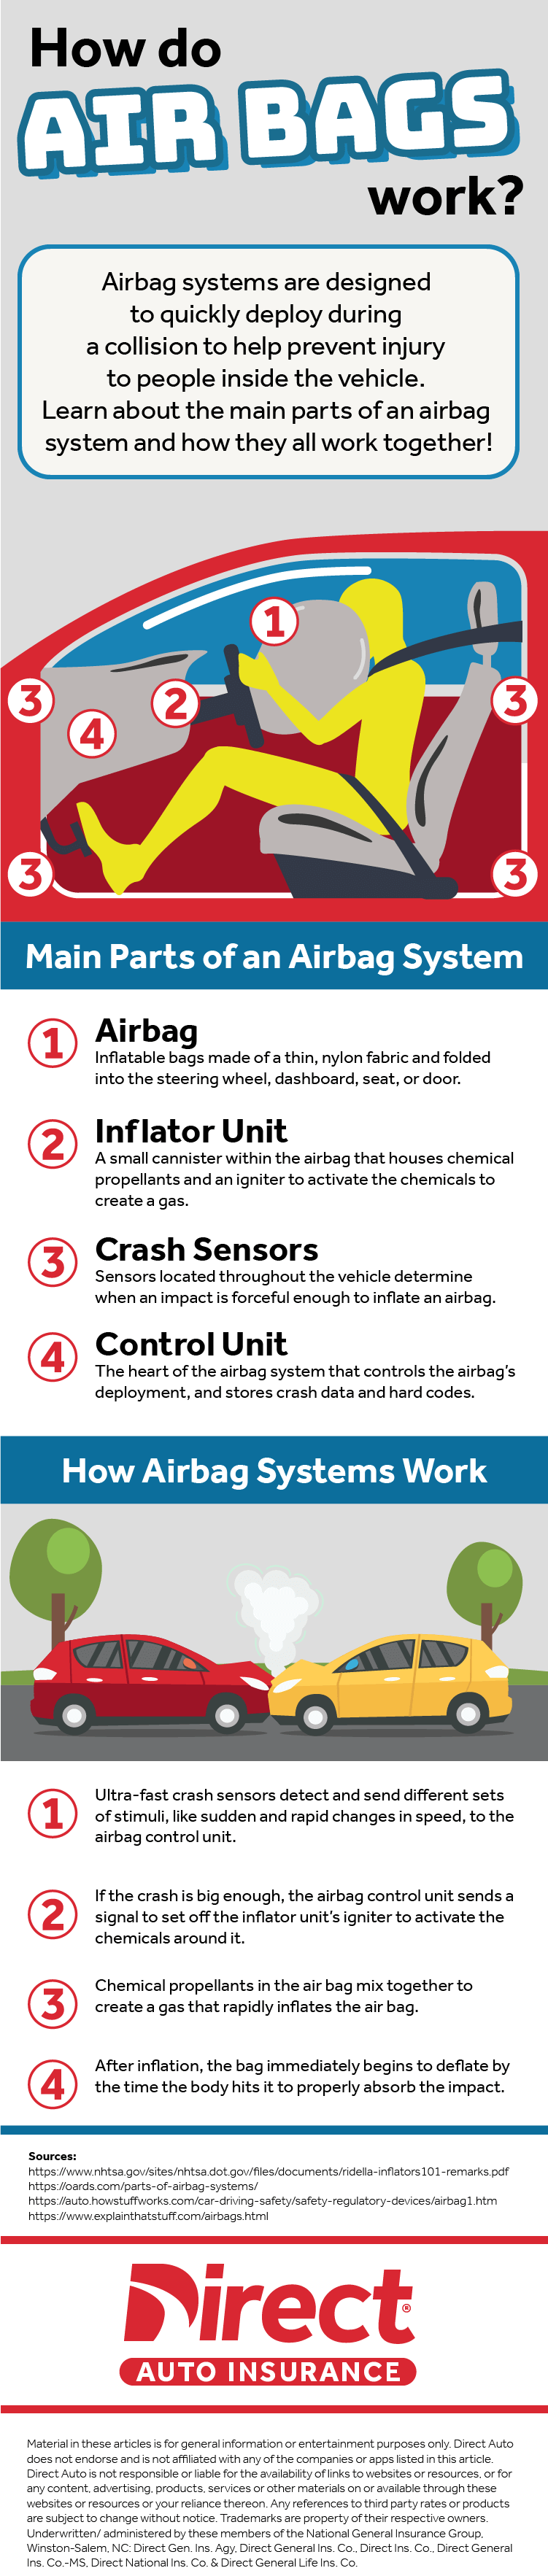 How do airbags work infographic